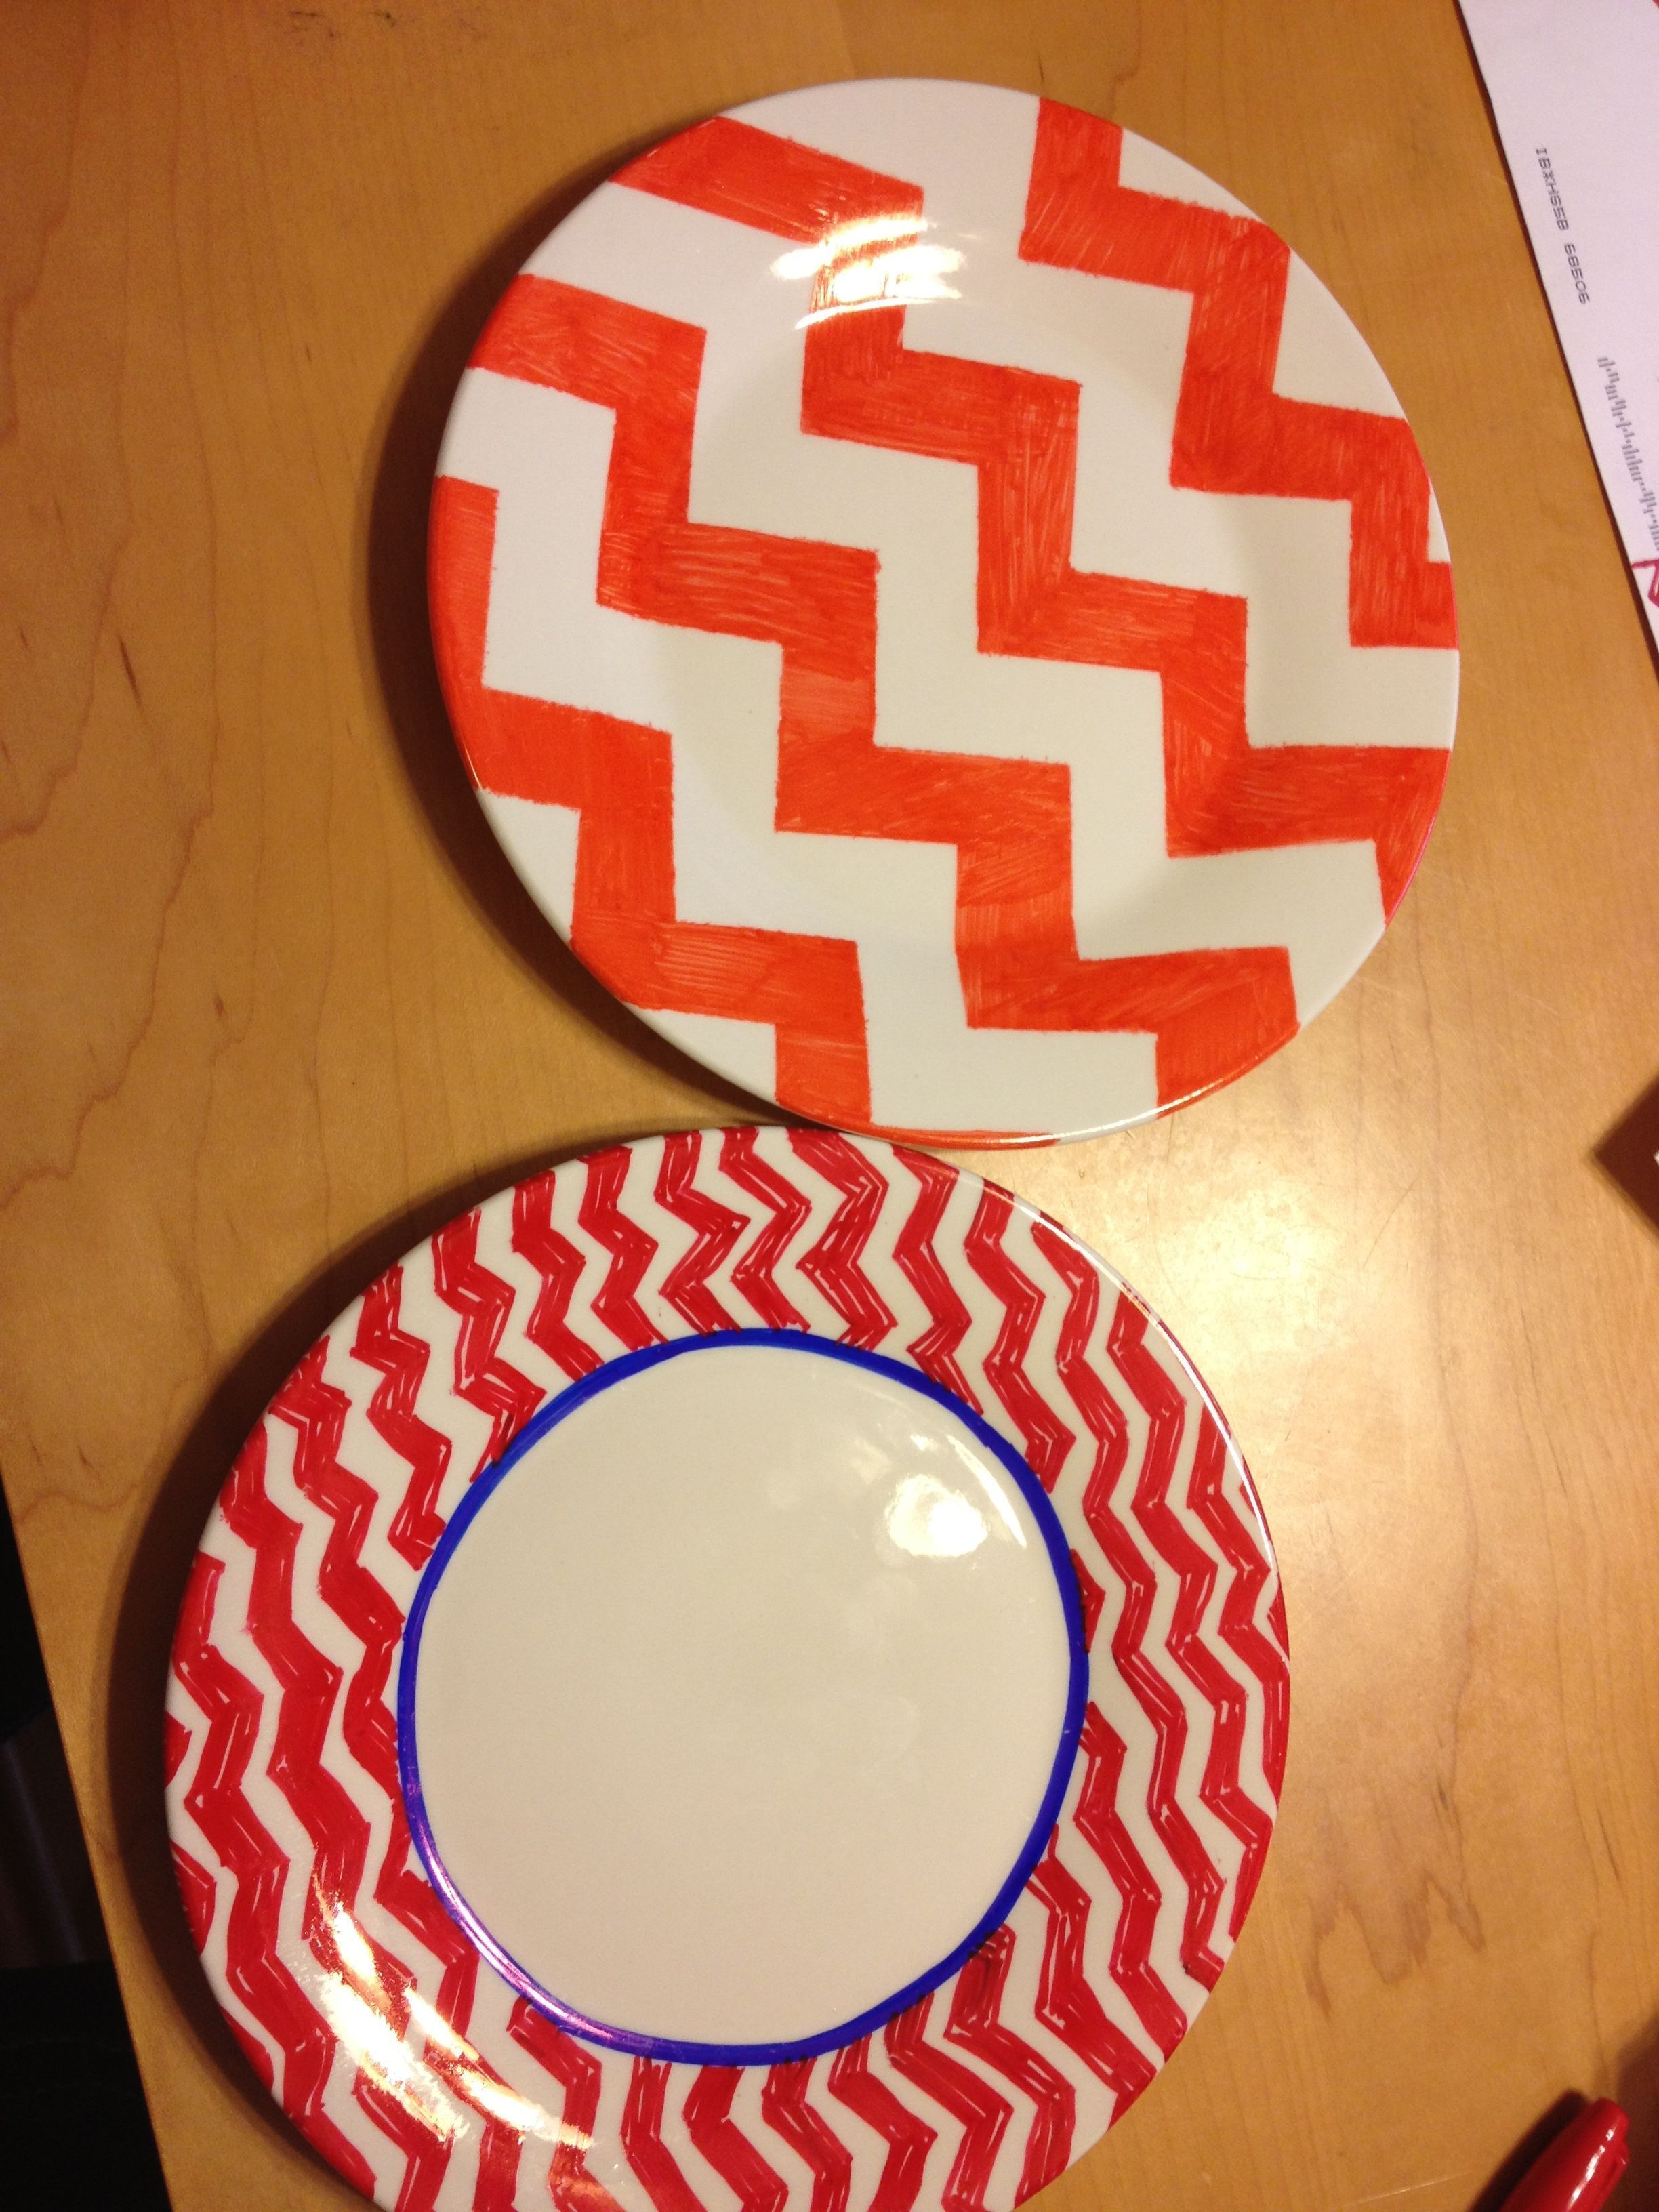 We made our own chevron sharpie plates! #sharpieplates We made our own chevron sharpie plates! #sharpieplates We made our own chevron sharpie plates! #sharpieplates We made our own chevron sharpie plates! #sharpieplates We made our own chevron sharpie plates! #sharpieplates We made our own chevron sharpie plates! #sharpieplates We made our own chevron sharpie plates! #sharpieplates We made our own chevron sharpie plates! #sharpieplates We made our own chevron sharpie plates! #sharpieplates We ma #sharpieplates